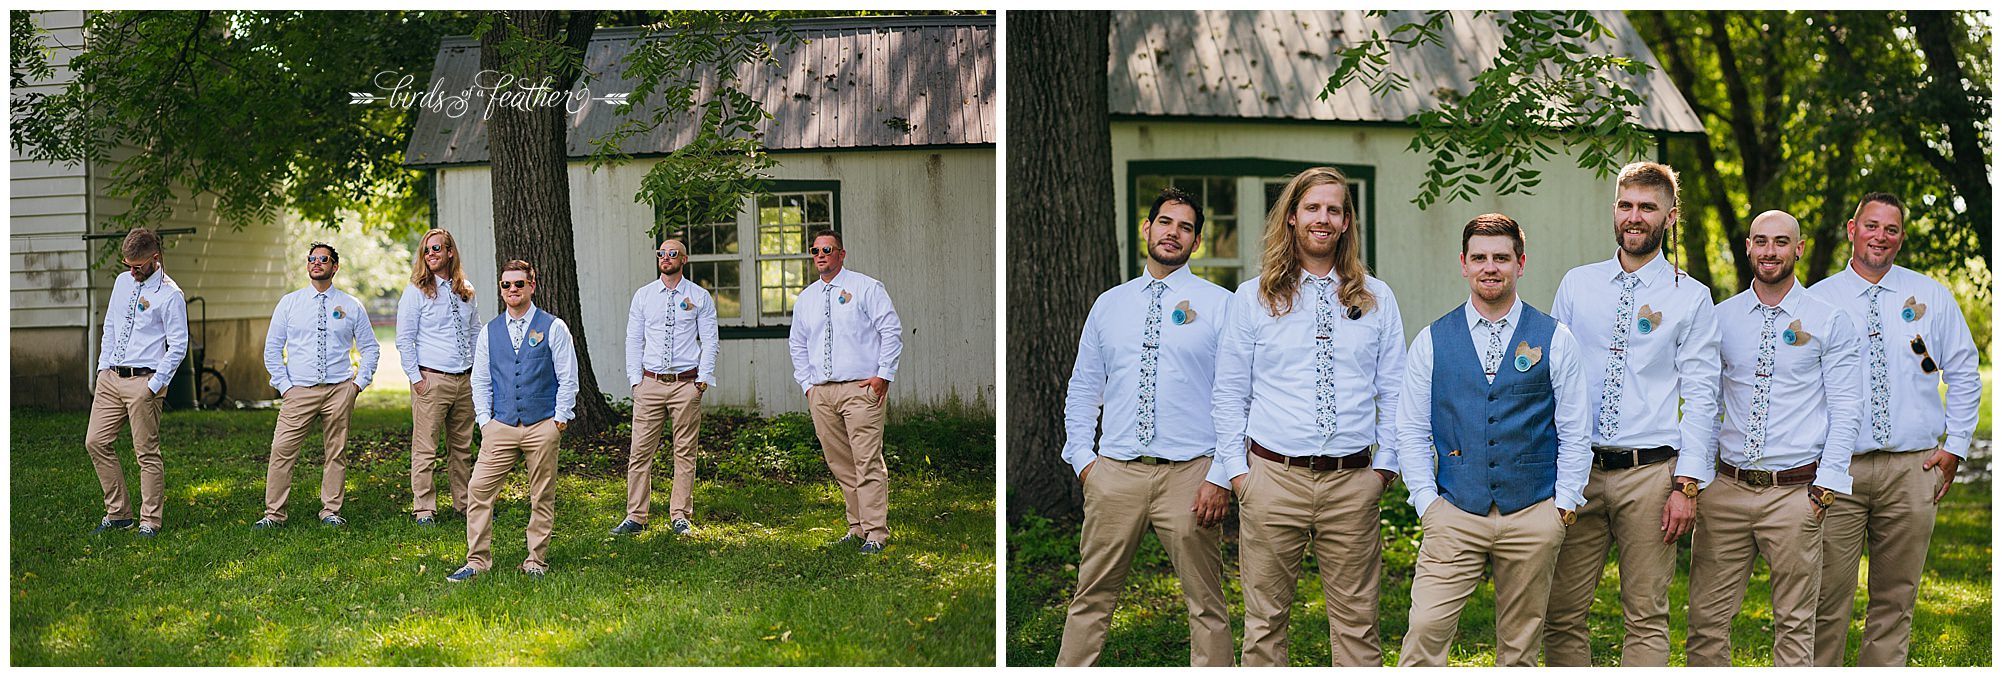 Birds of a Feather Photography Rodale Institute Kutztown Pa Wedding Photographer 10